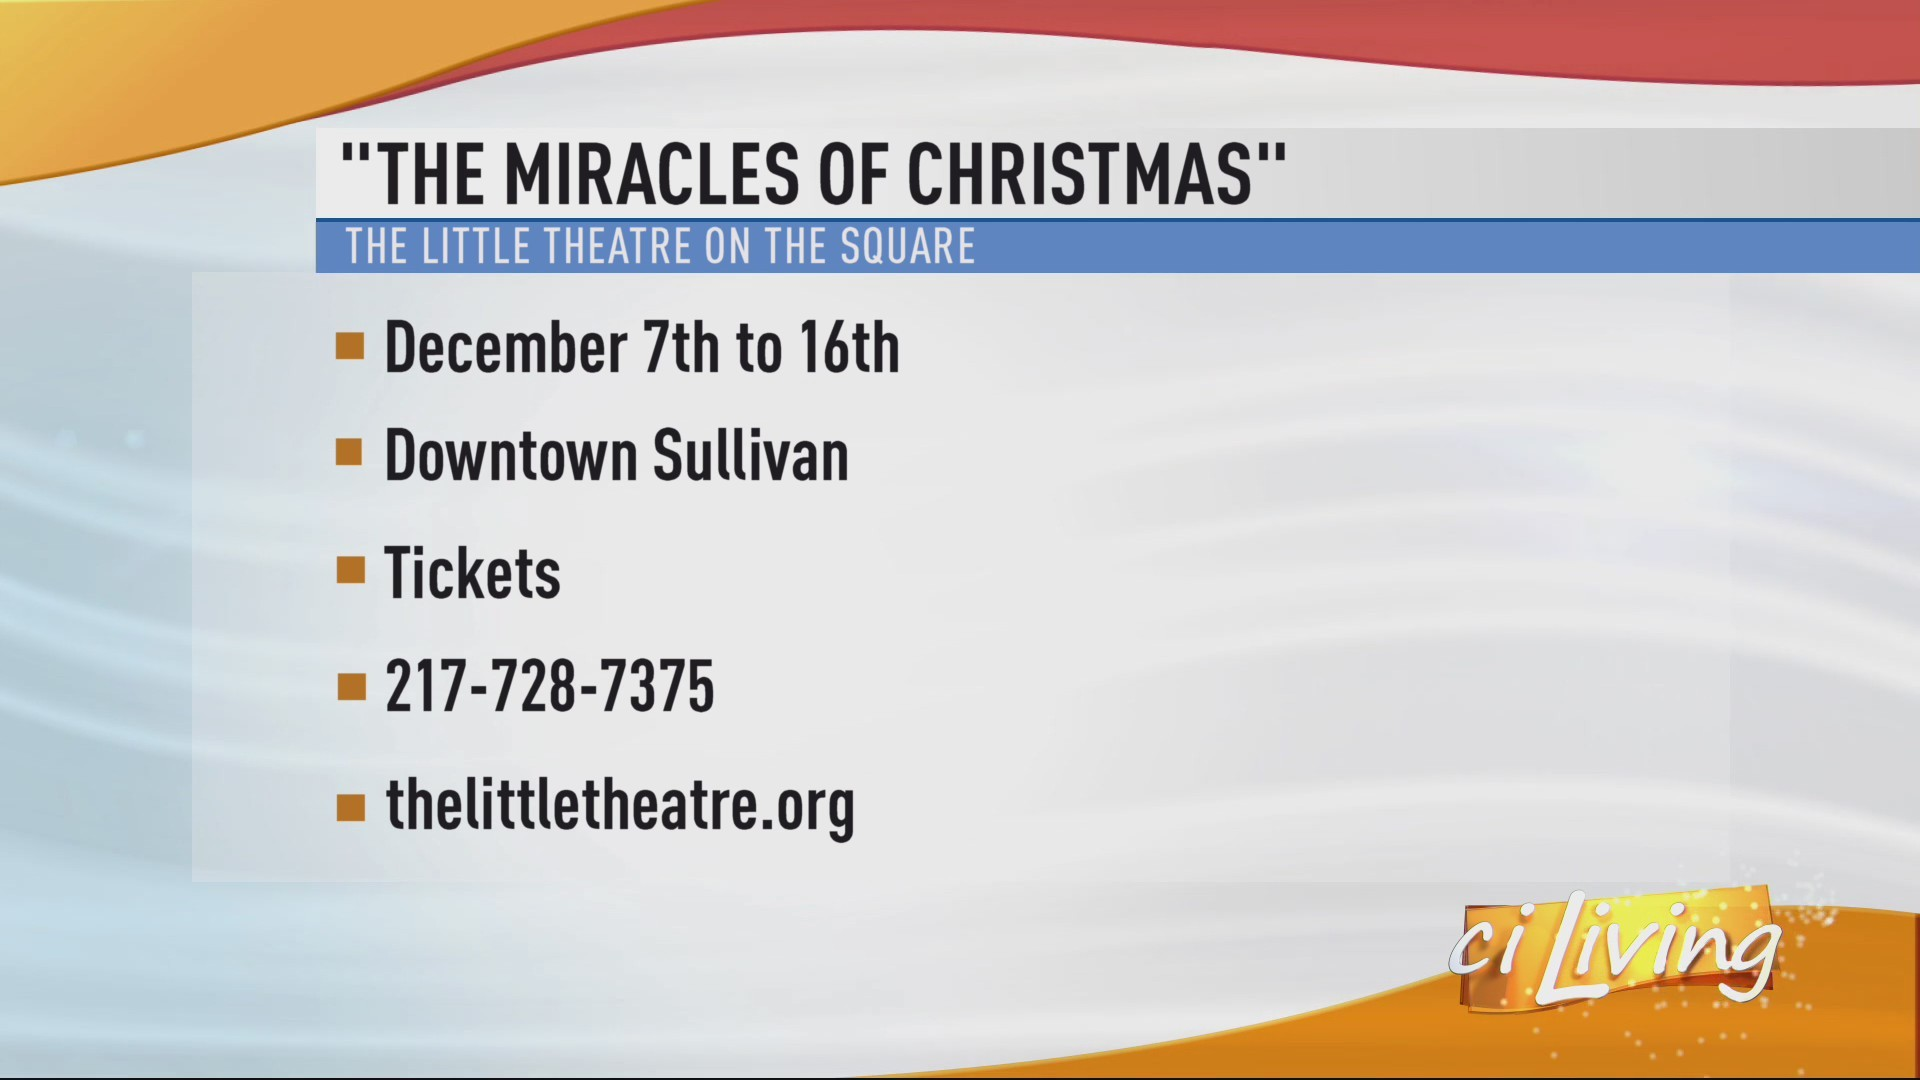 The Little Theatre on the Square Holiday Musical